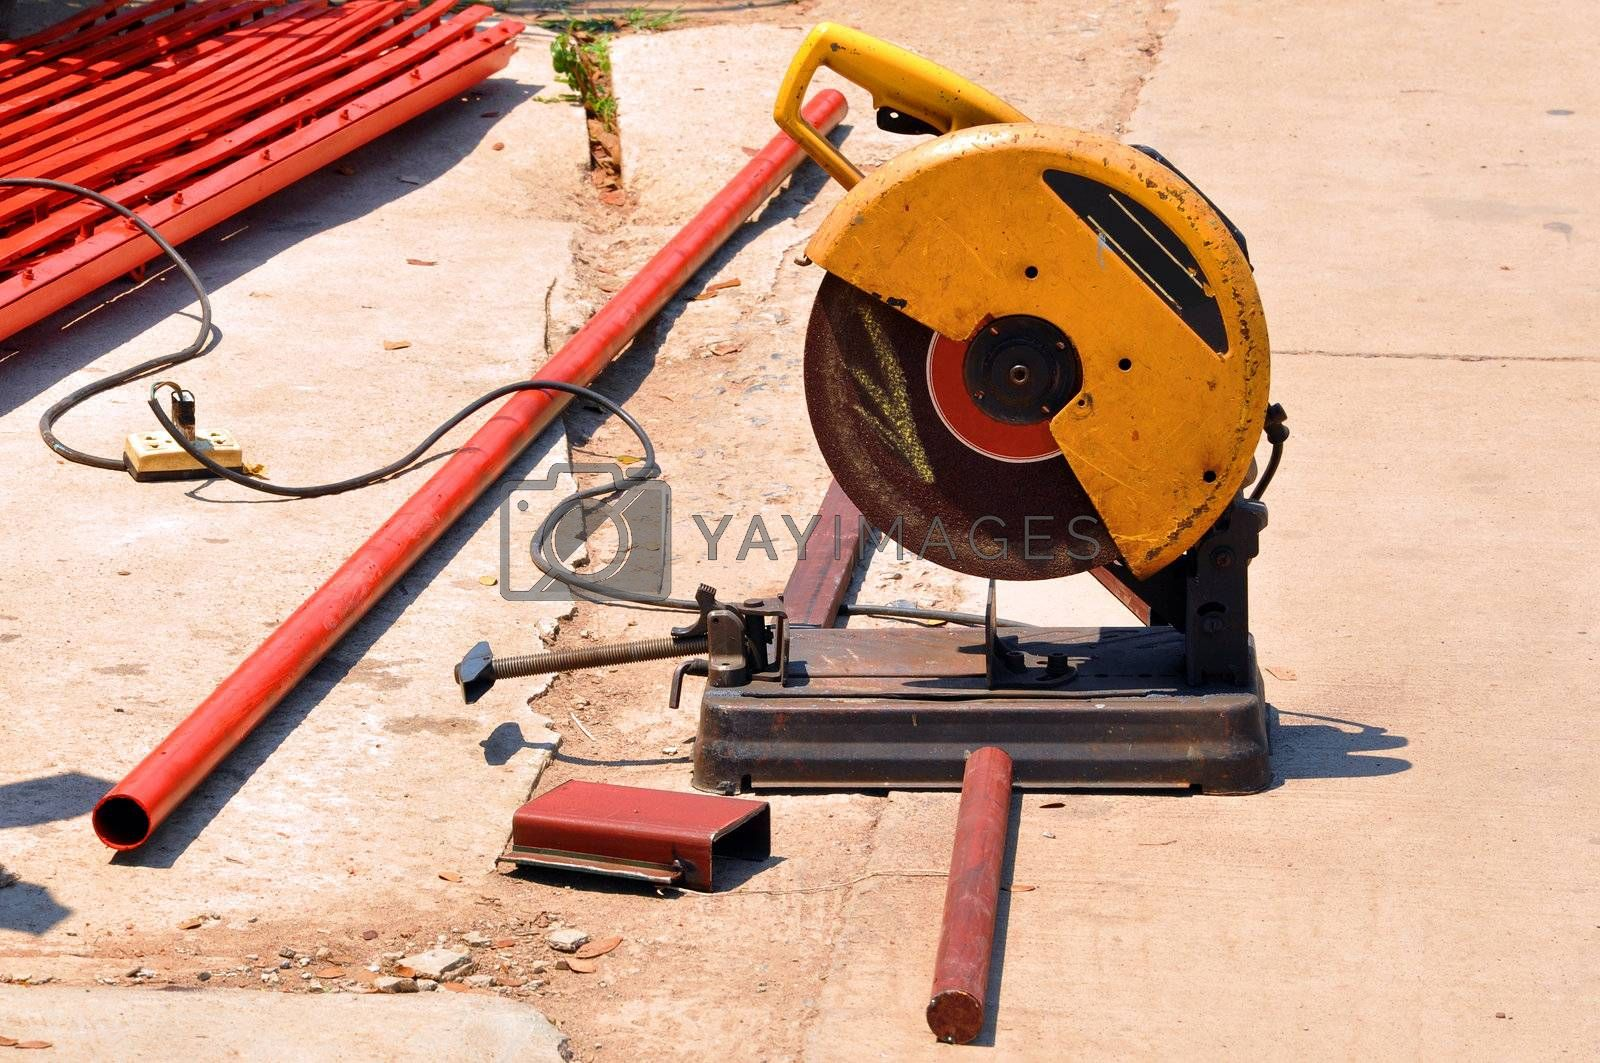 An abrasive saw, also known as a cut-off saw or metal chop saw, is a power tool which is typically used to cut hard materials, such as metals.